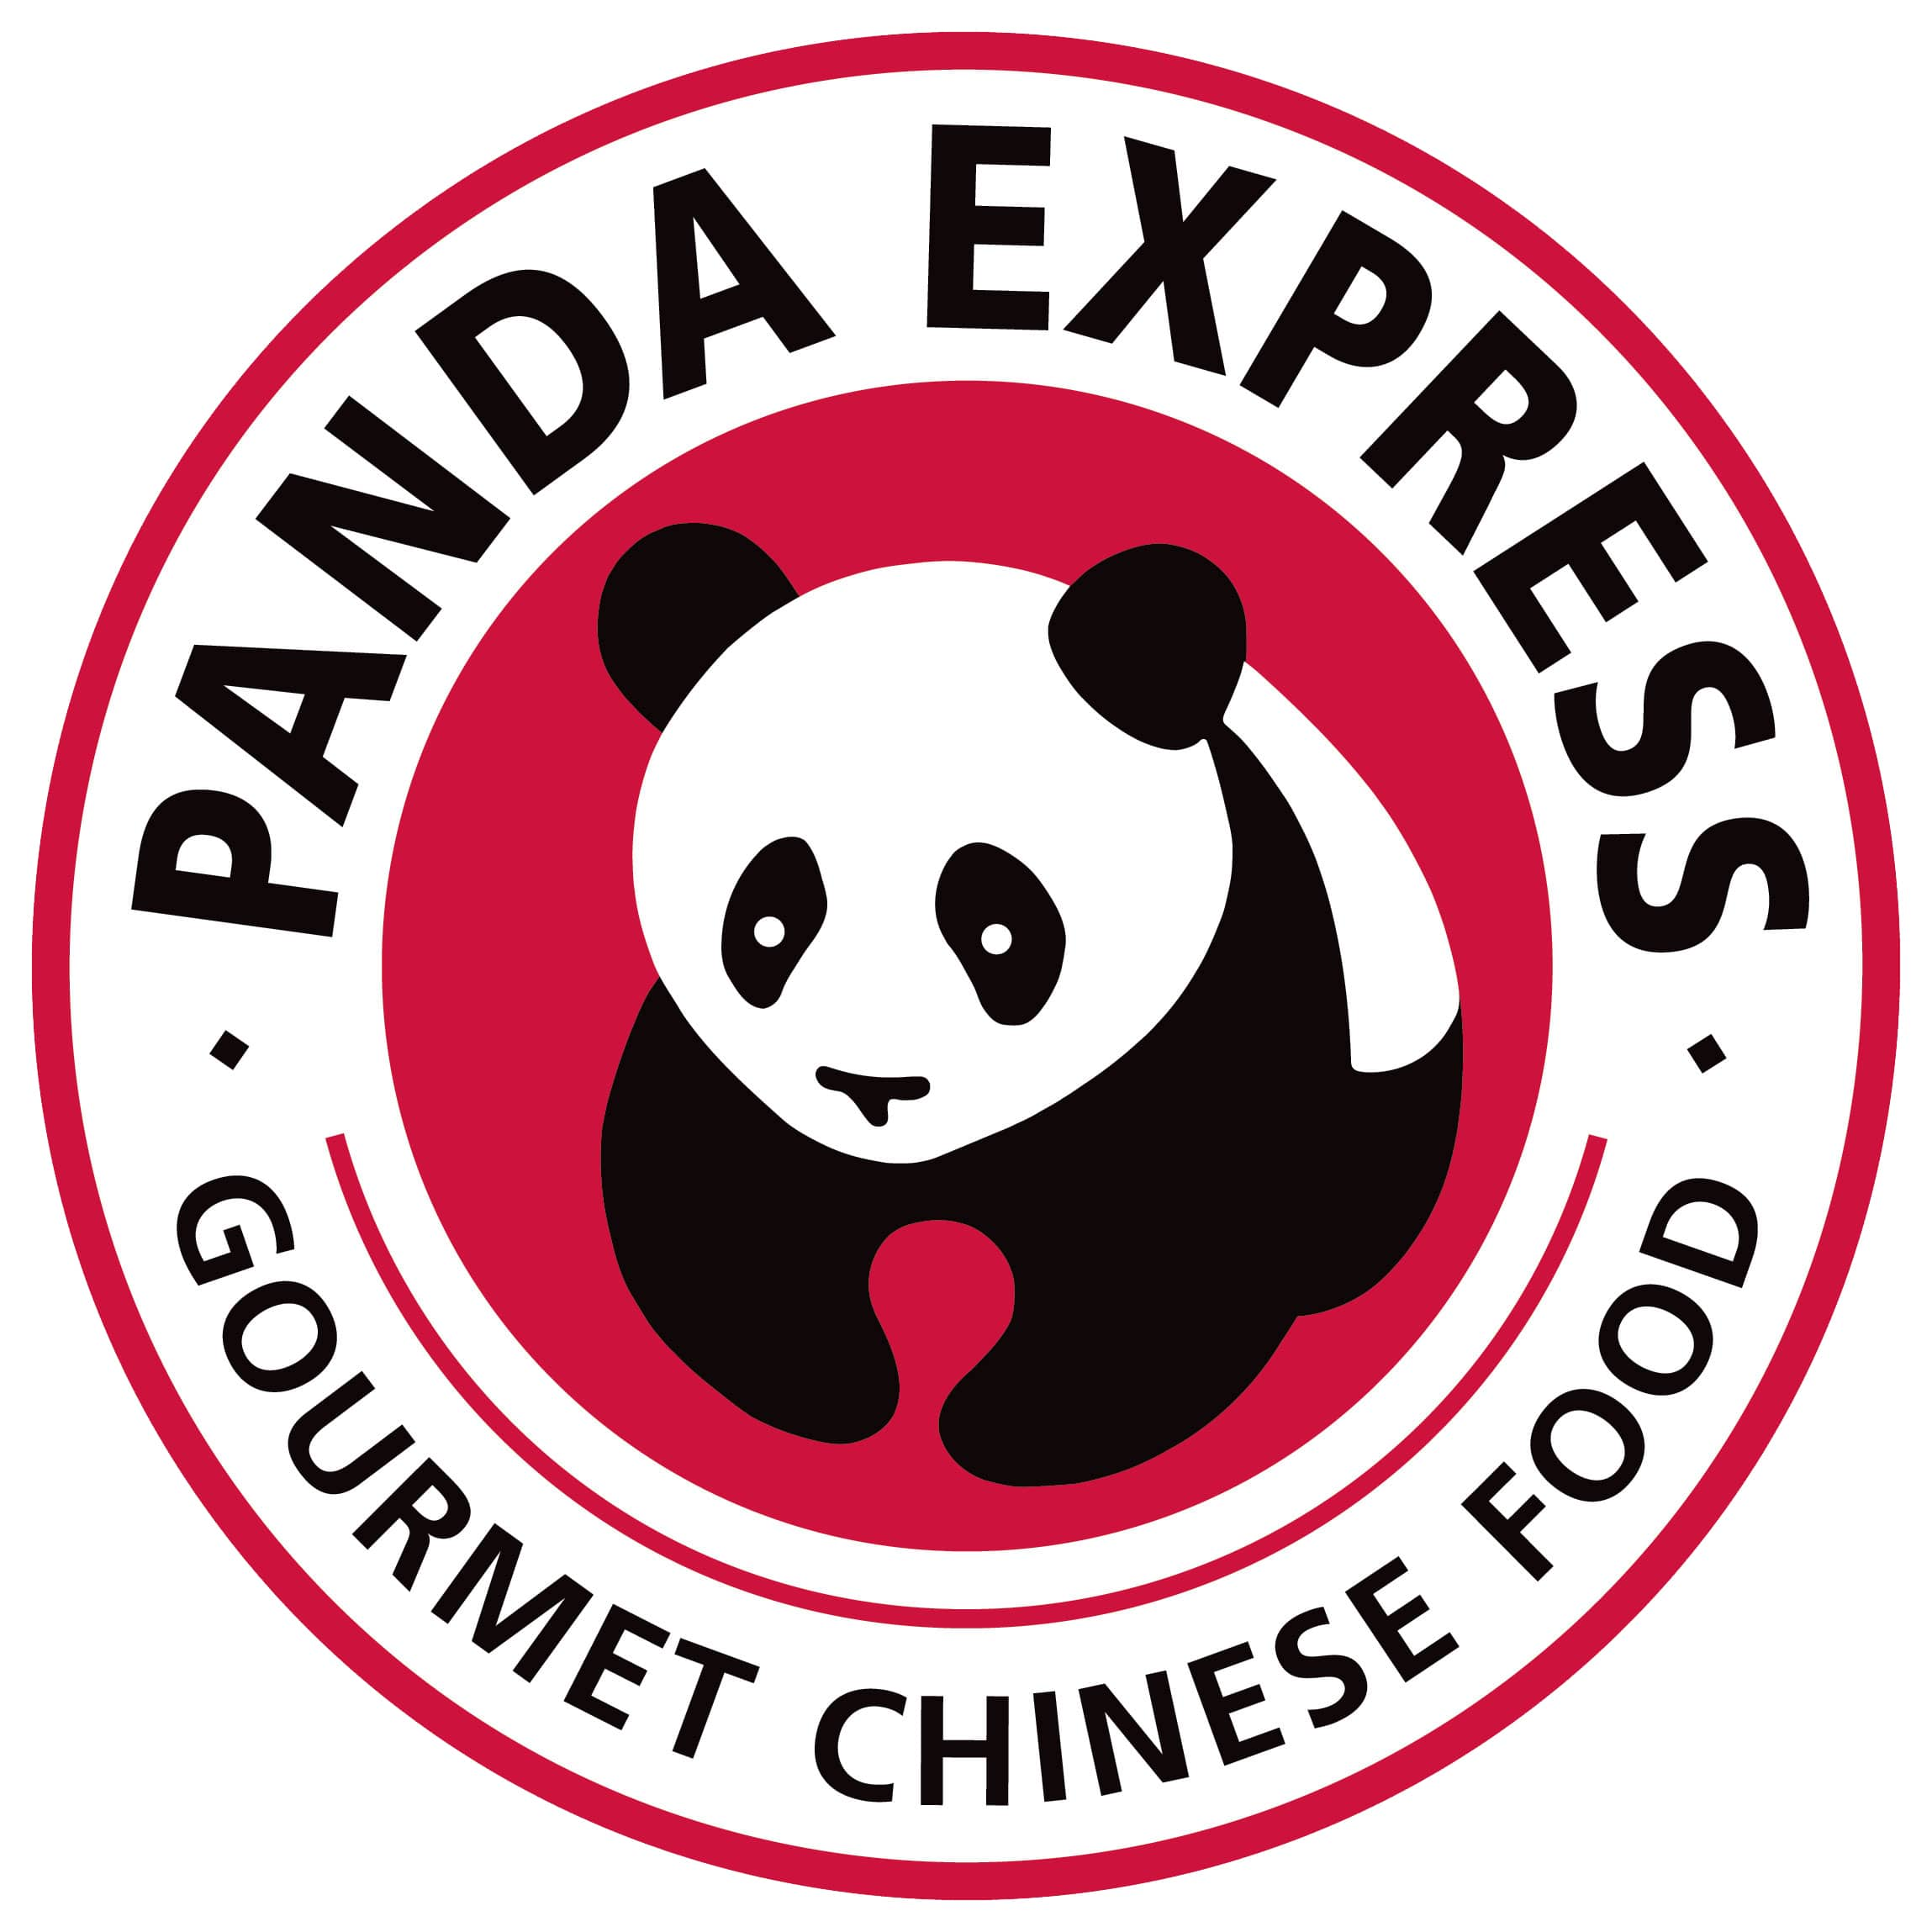 Panda Express **Free Item on your first online purchase. Starting on 9/10/14